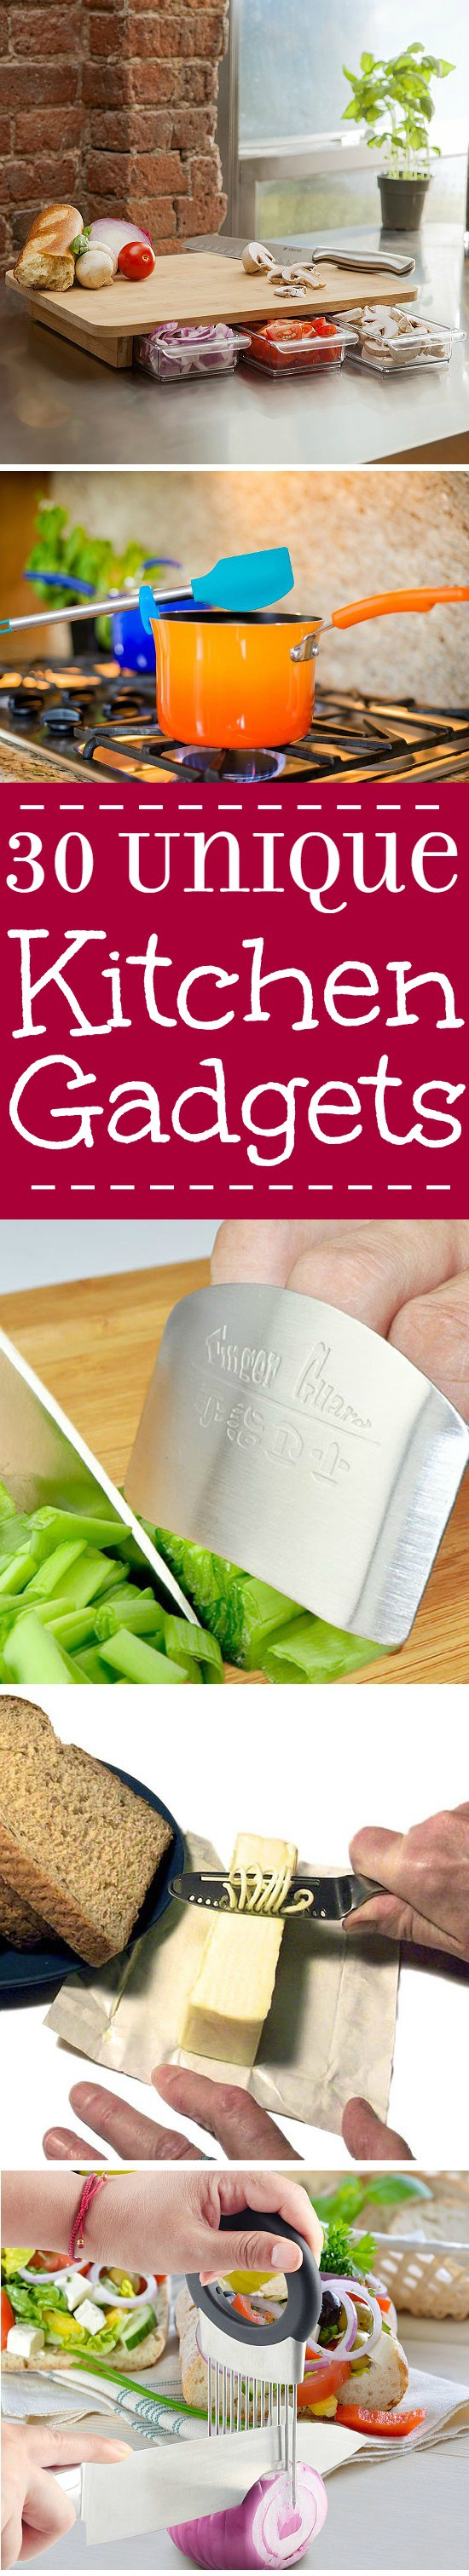 Amazing and unique kitchen gadgets that you need right now! These will make your whole life easier and turn your kitchen upside down. Everyone needs these! | kitchen tips | cooking tips